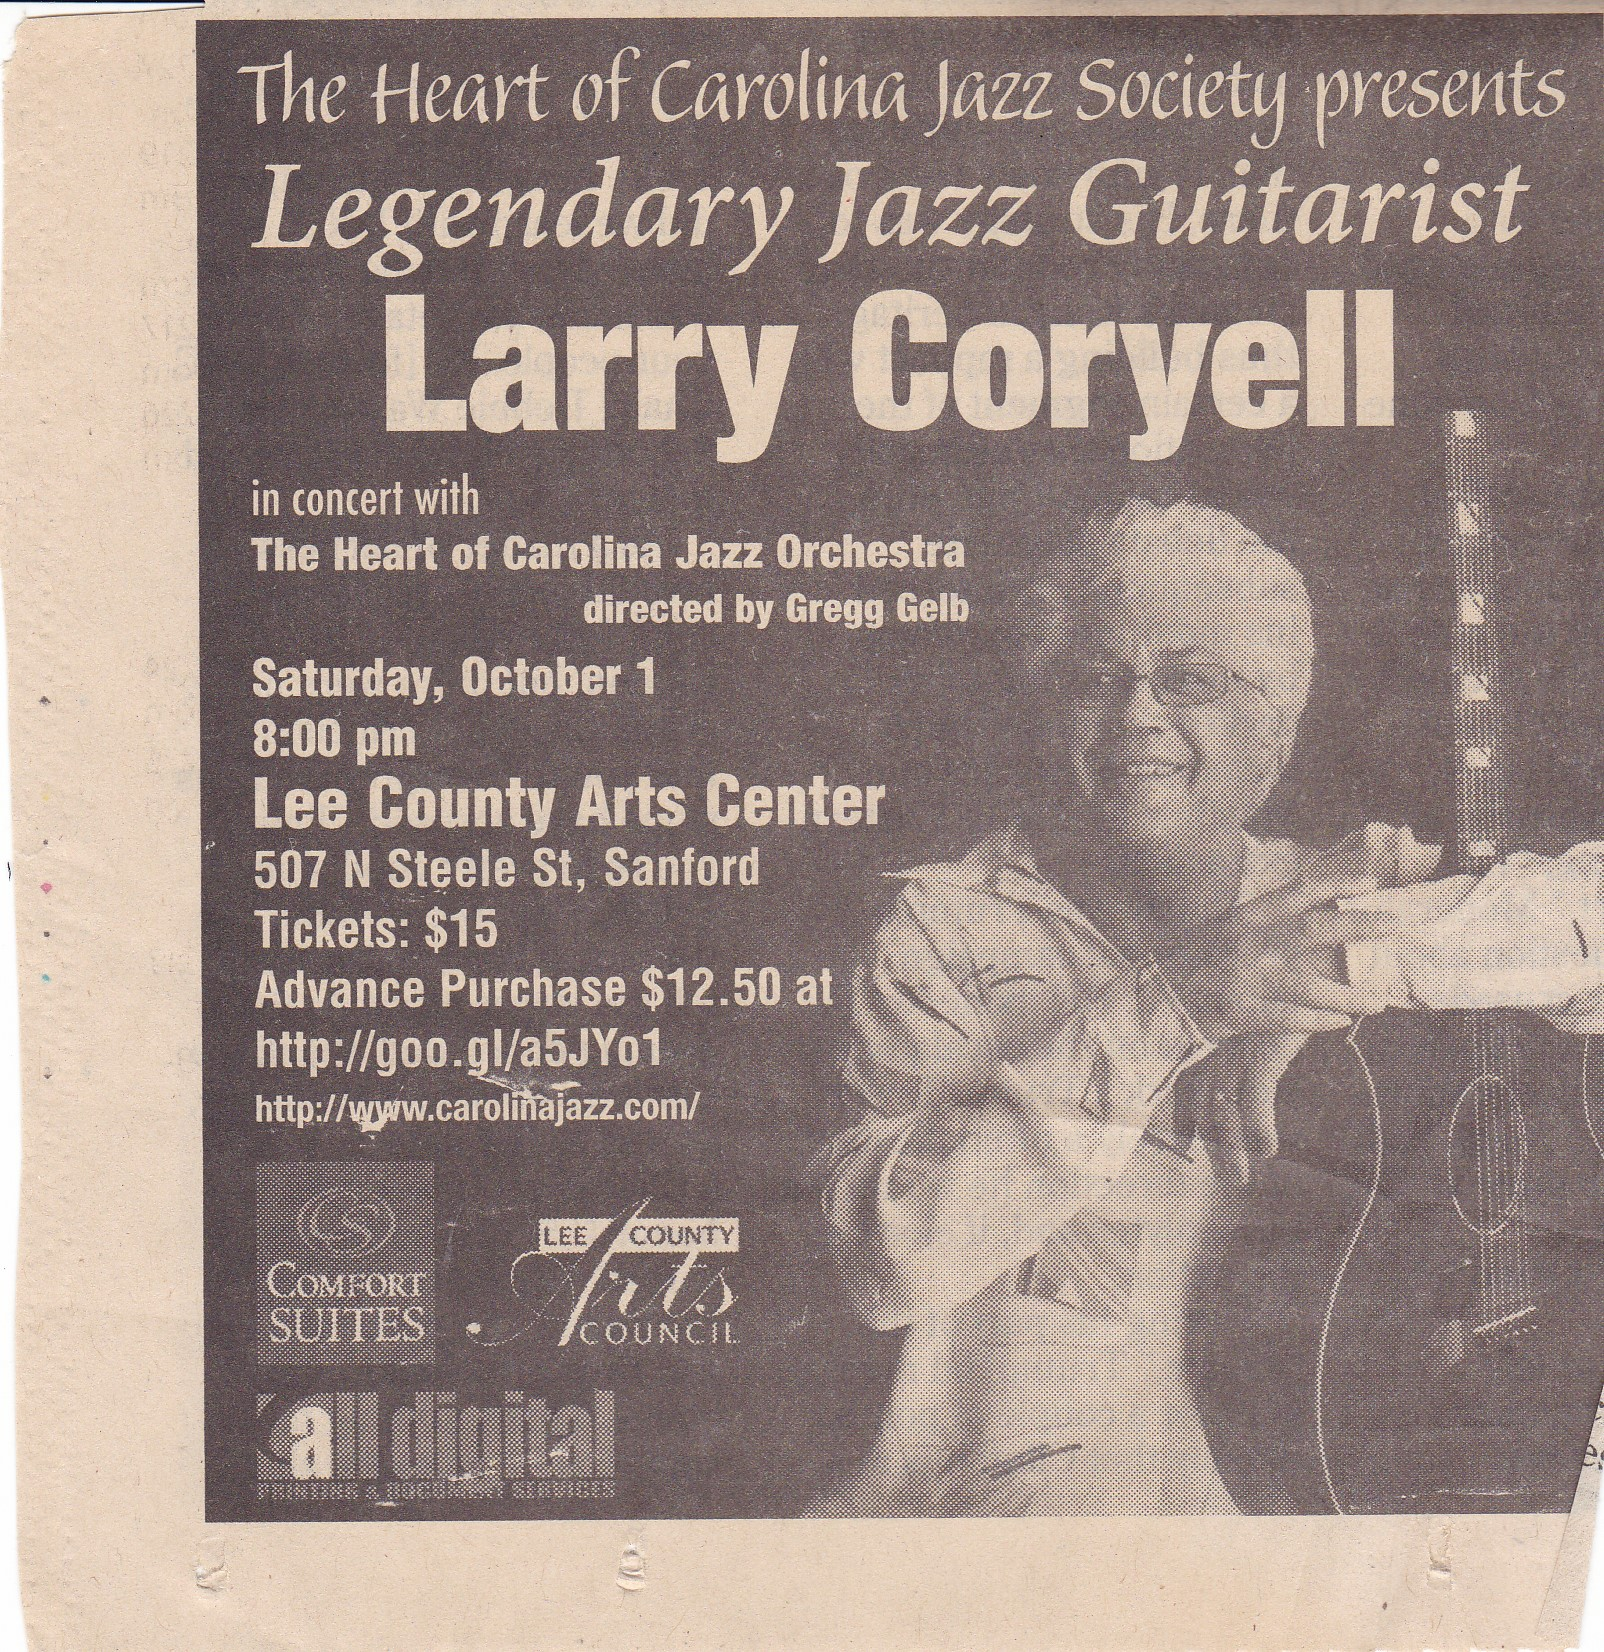 HOCJO-Guest-Artist-Larry-Coryell-ad